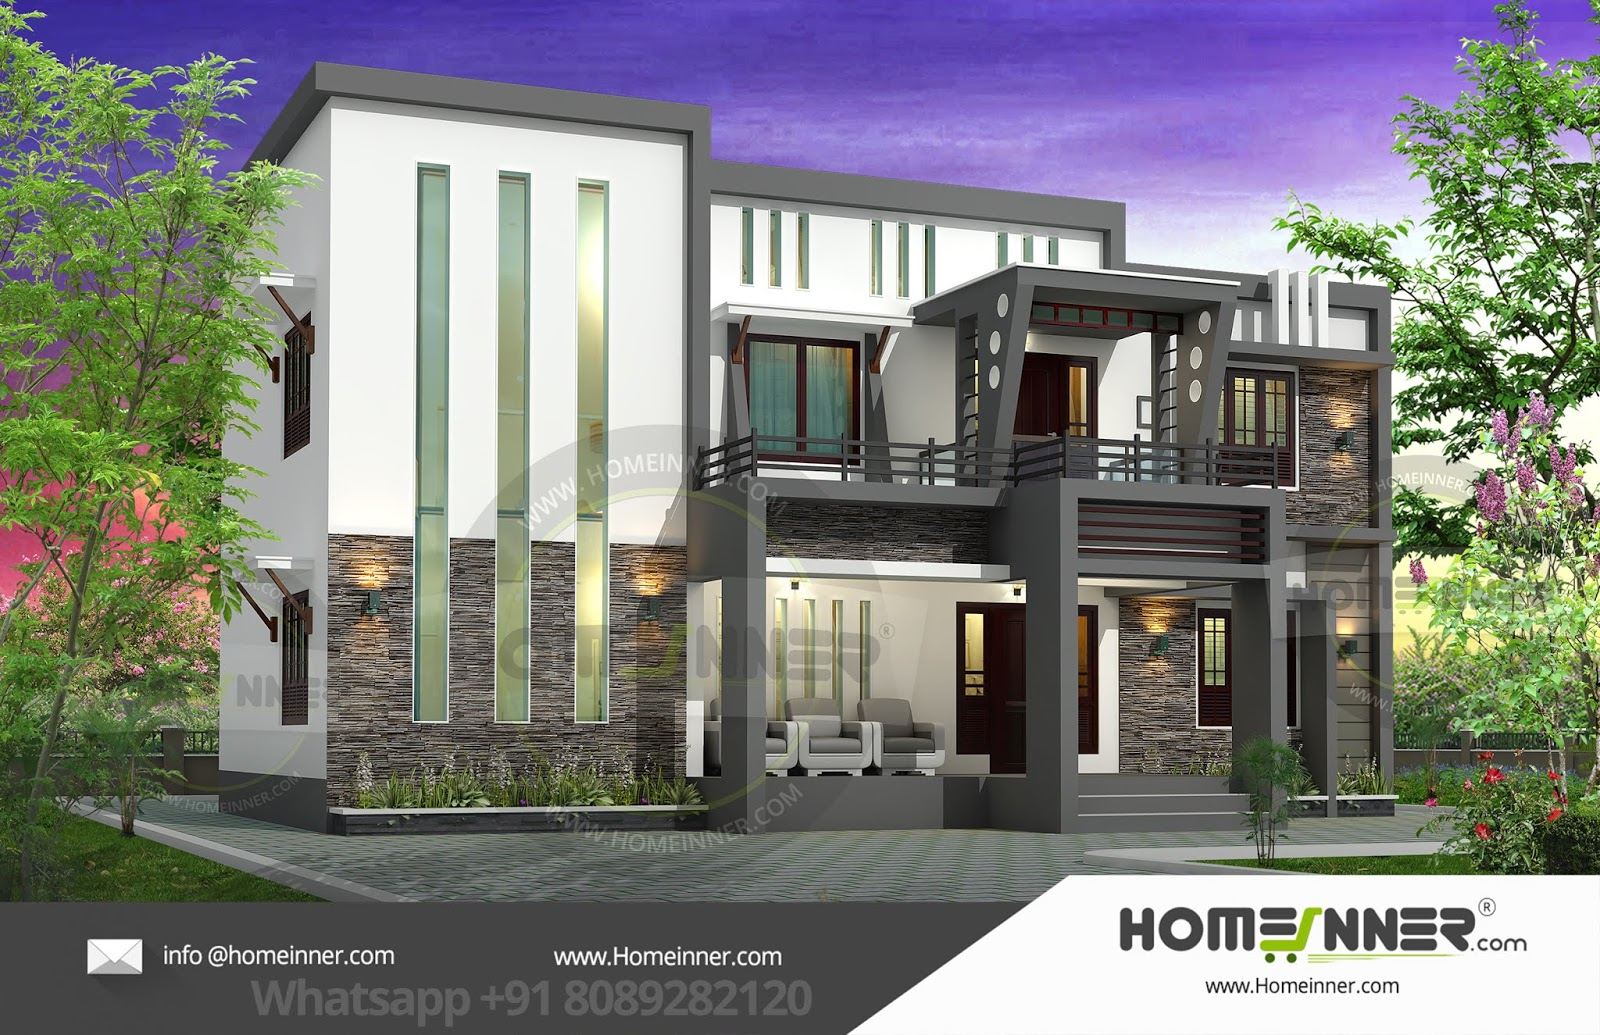 South Tripura 29 Lakh first floor home plan